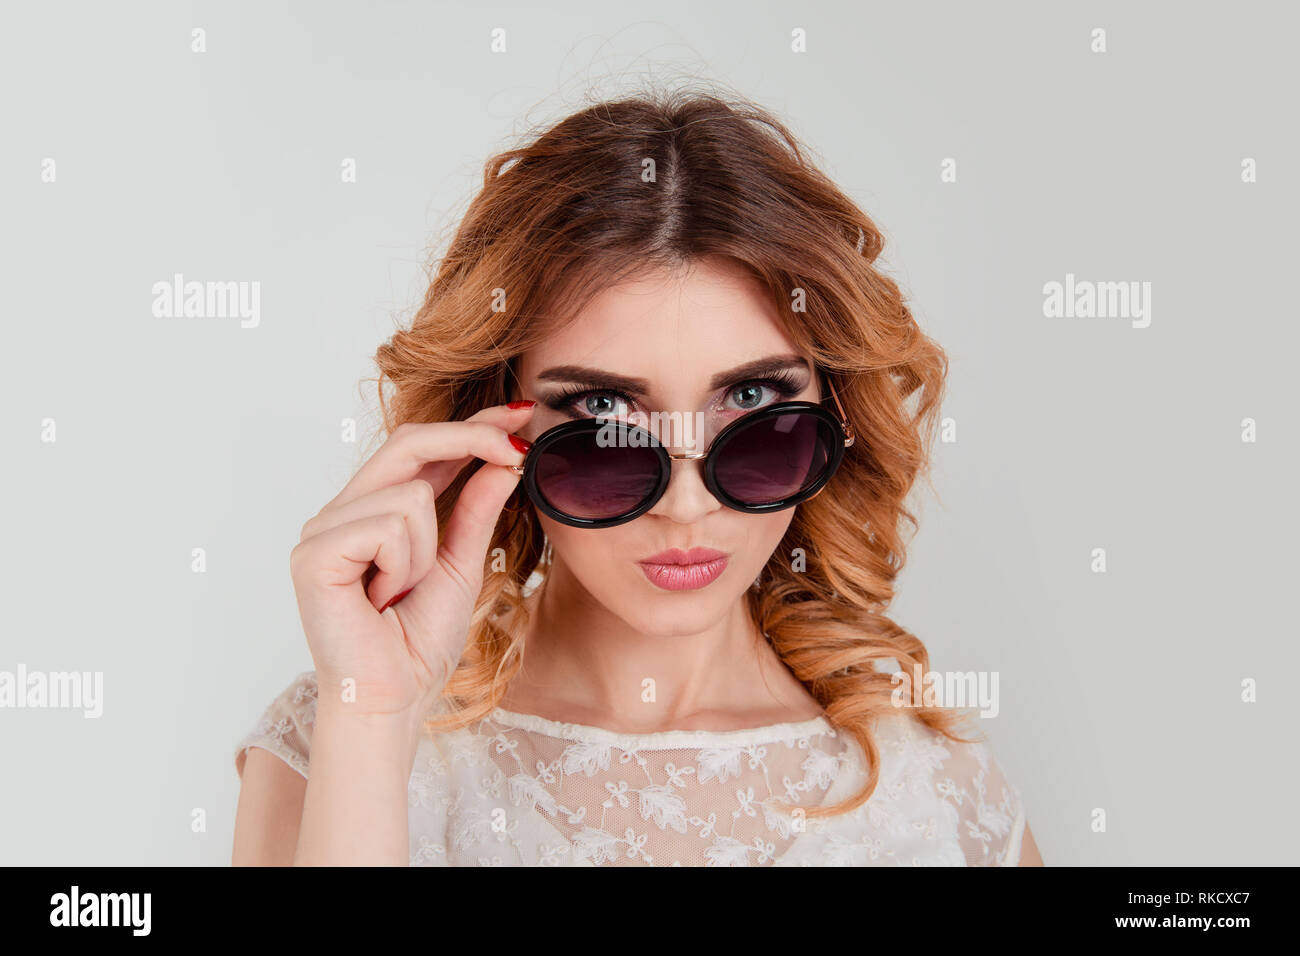 Skeptical woman hold sunglasses - Stock Image